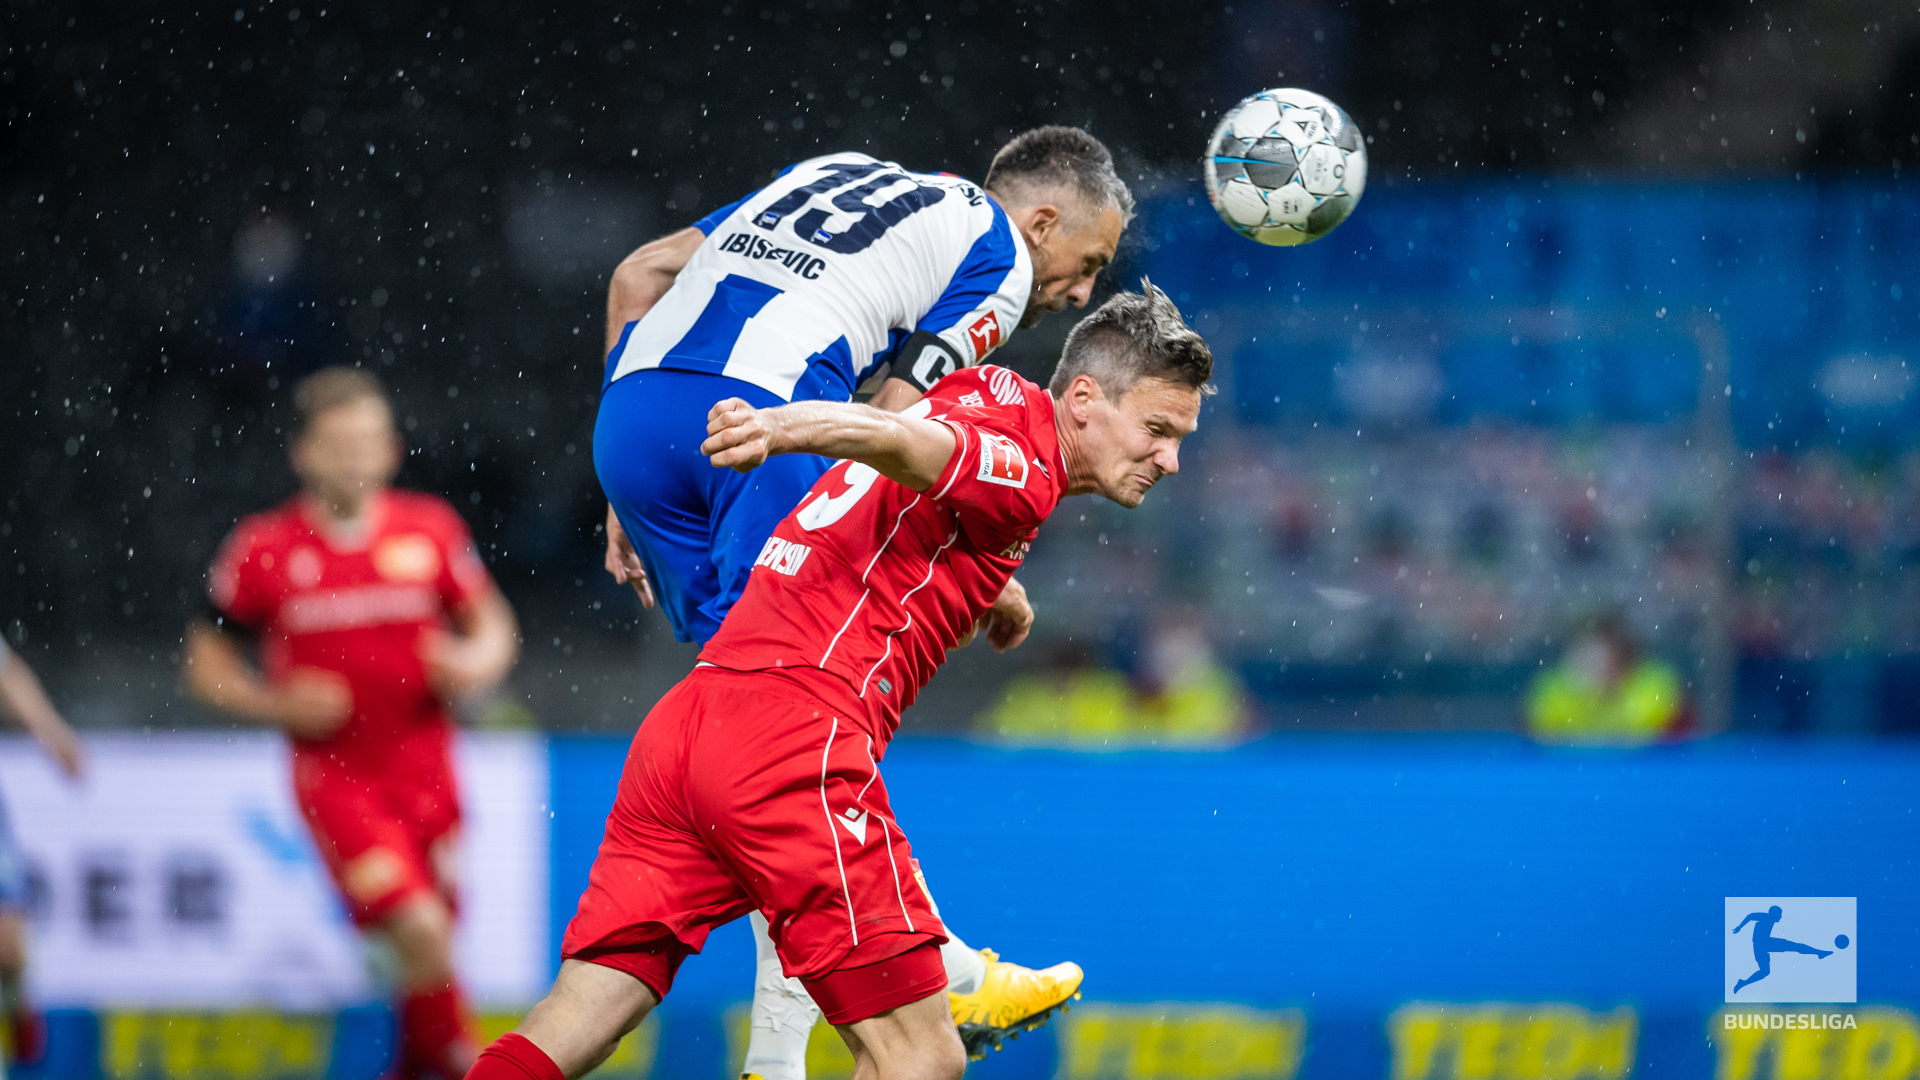 Bundesliga: Ujah Subbed On In Union Berlin 4-0 Derby Loss To Hertha